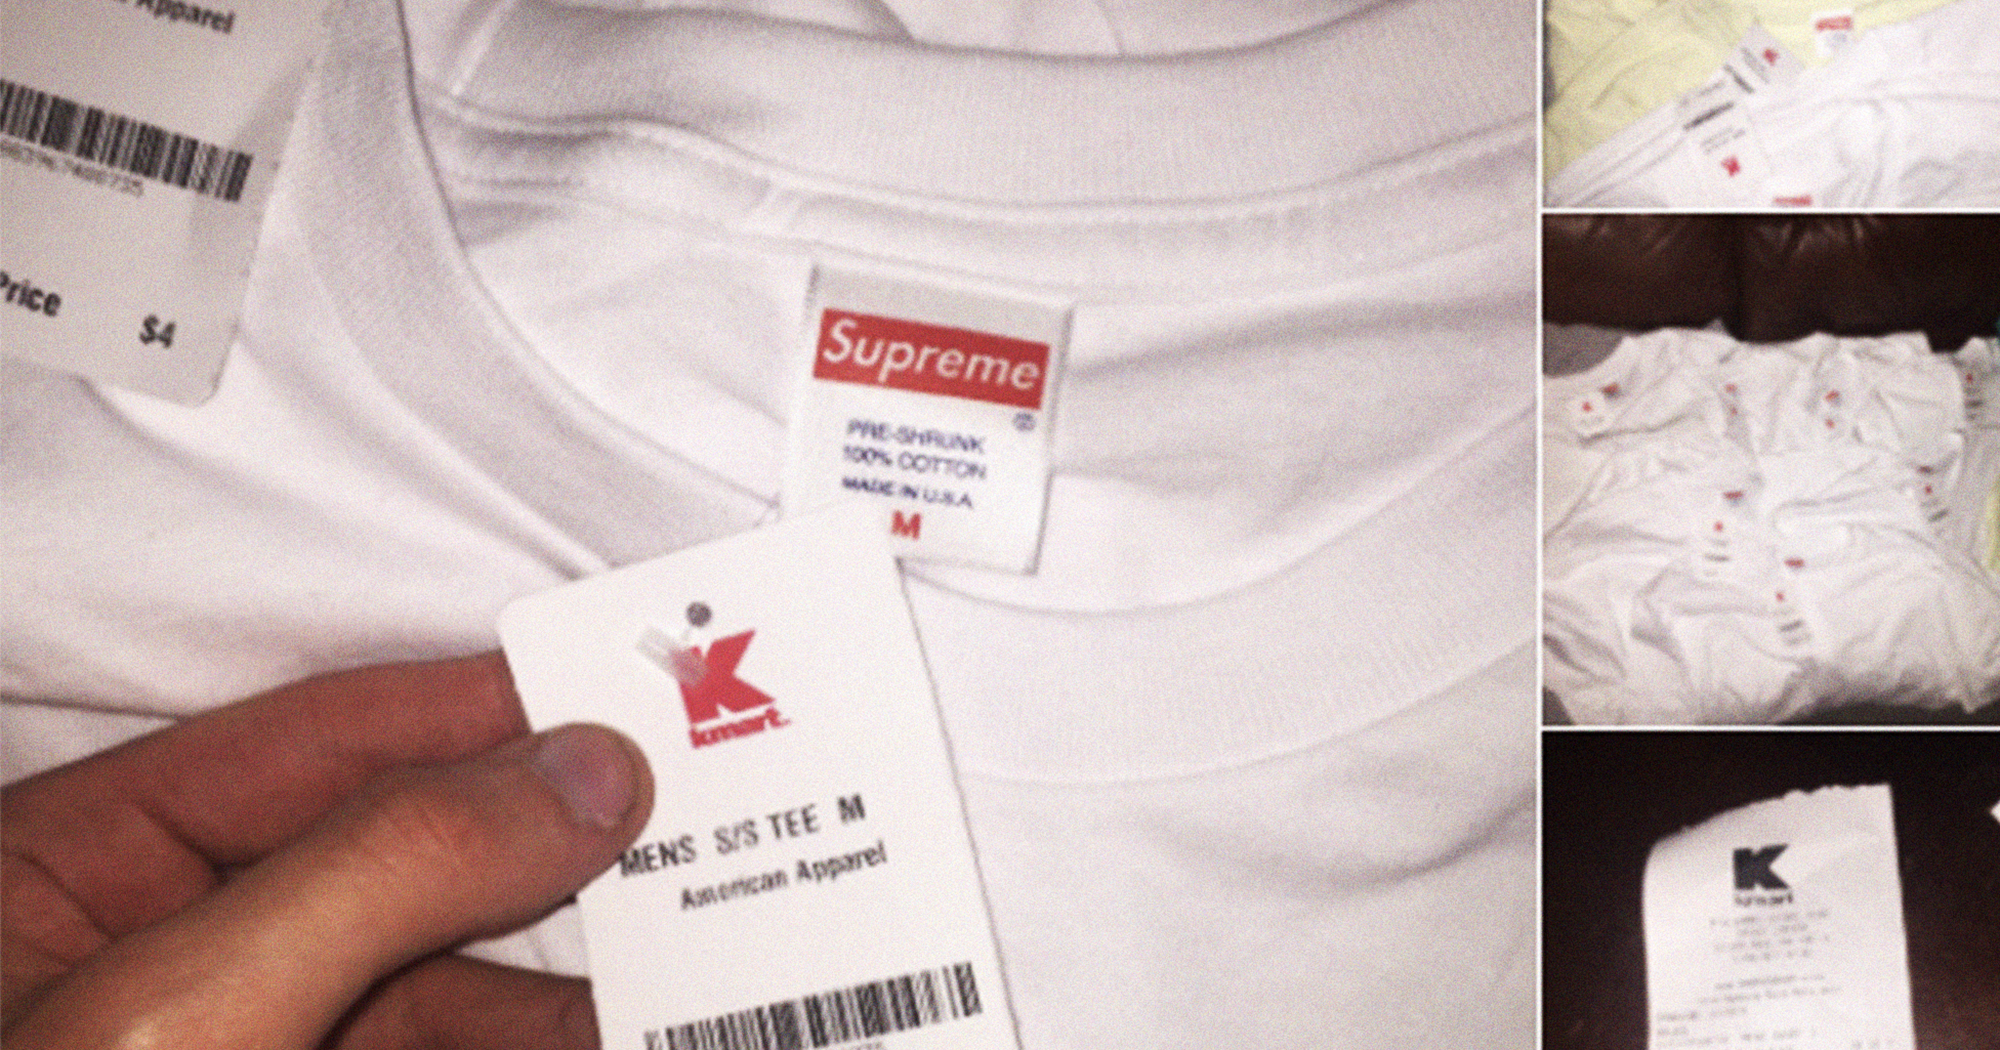 Cheap Supreme T Shirts Kmart Four Dollar